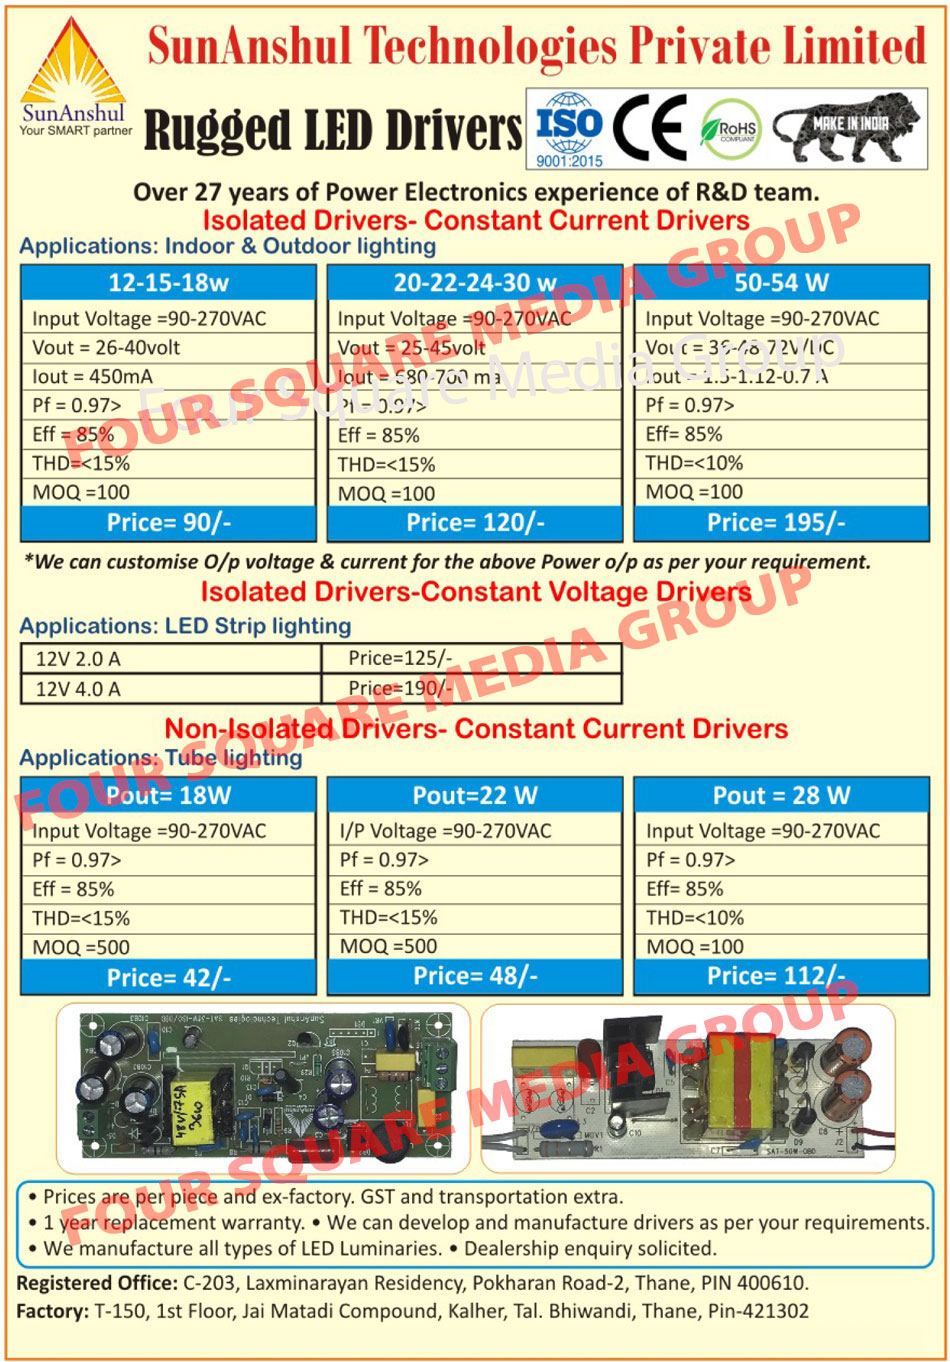 Led Drivers, Isolated Drivers, Constant Current Drivers, Constant Voltage Drivers, Non Isolated Drivers